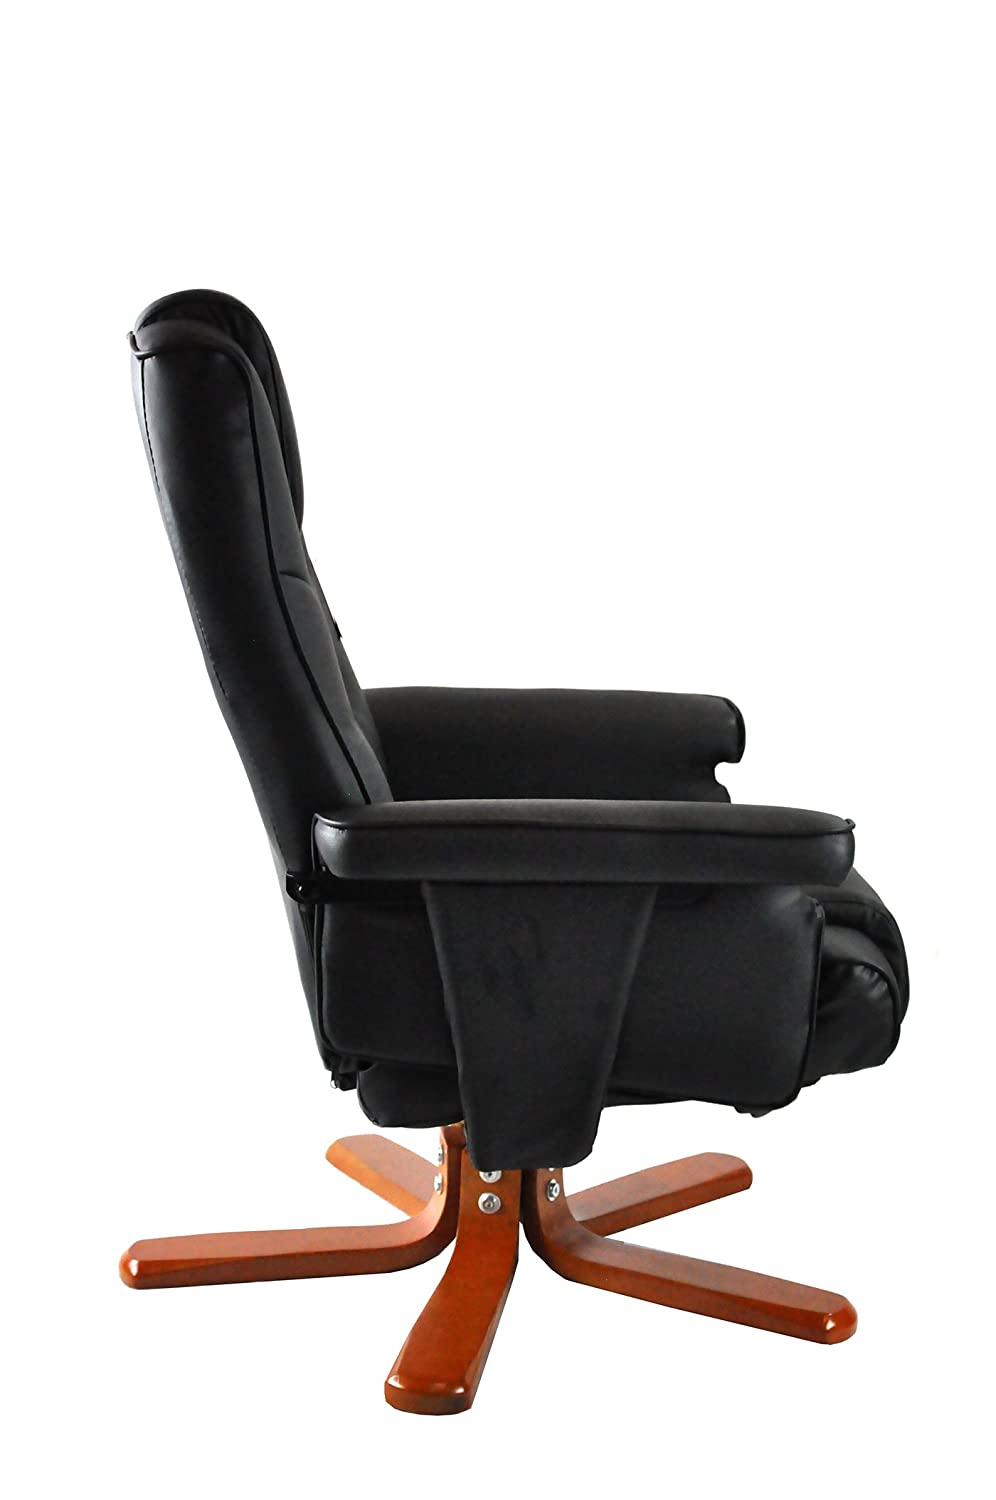 Armchair Recliner With Footstool Executive PU Leather Luxury Faux High Back Reading Chair For Home Study Office Desk By Harvey Williams - Black ...  sc 1 st  Amazon UK & Armchair Recliner With Footstool Executive PU Leather Luxury Faux ... islam-shia.org